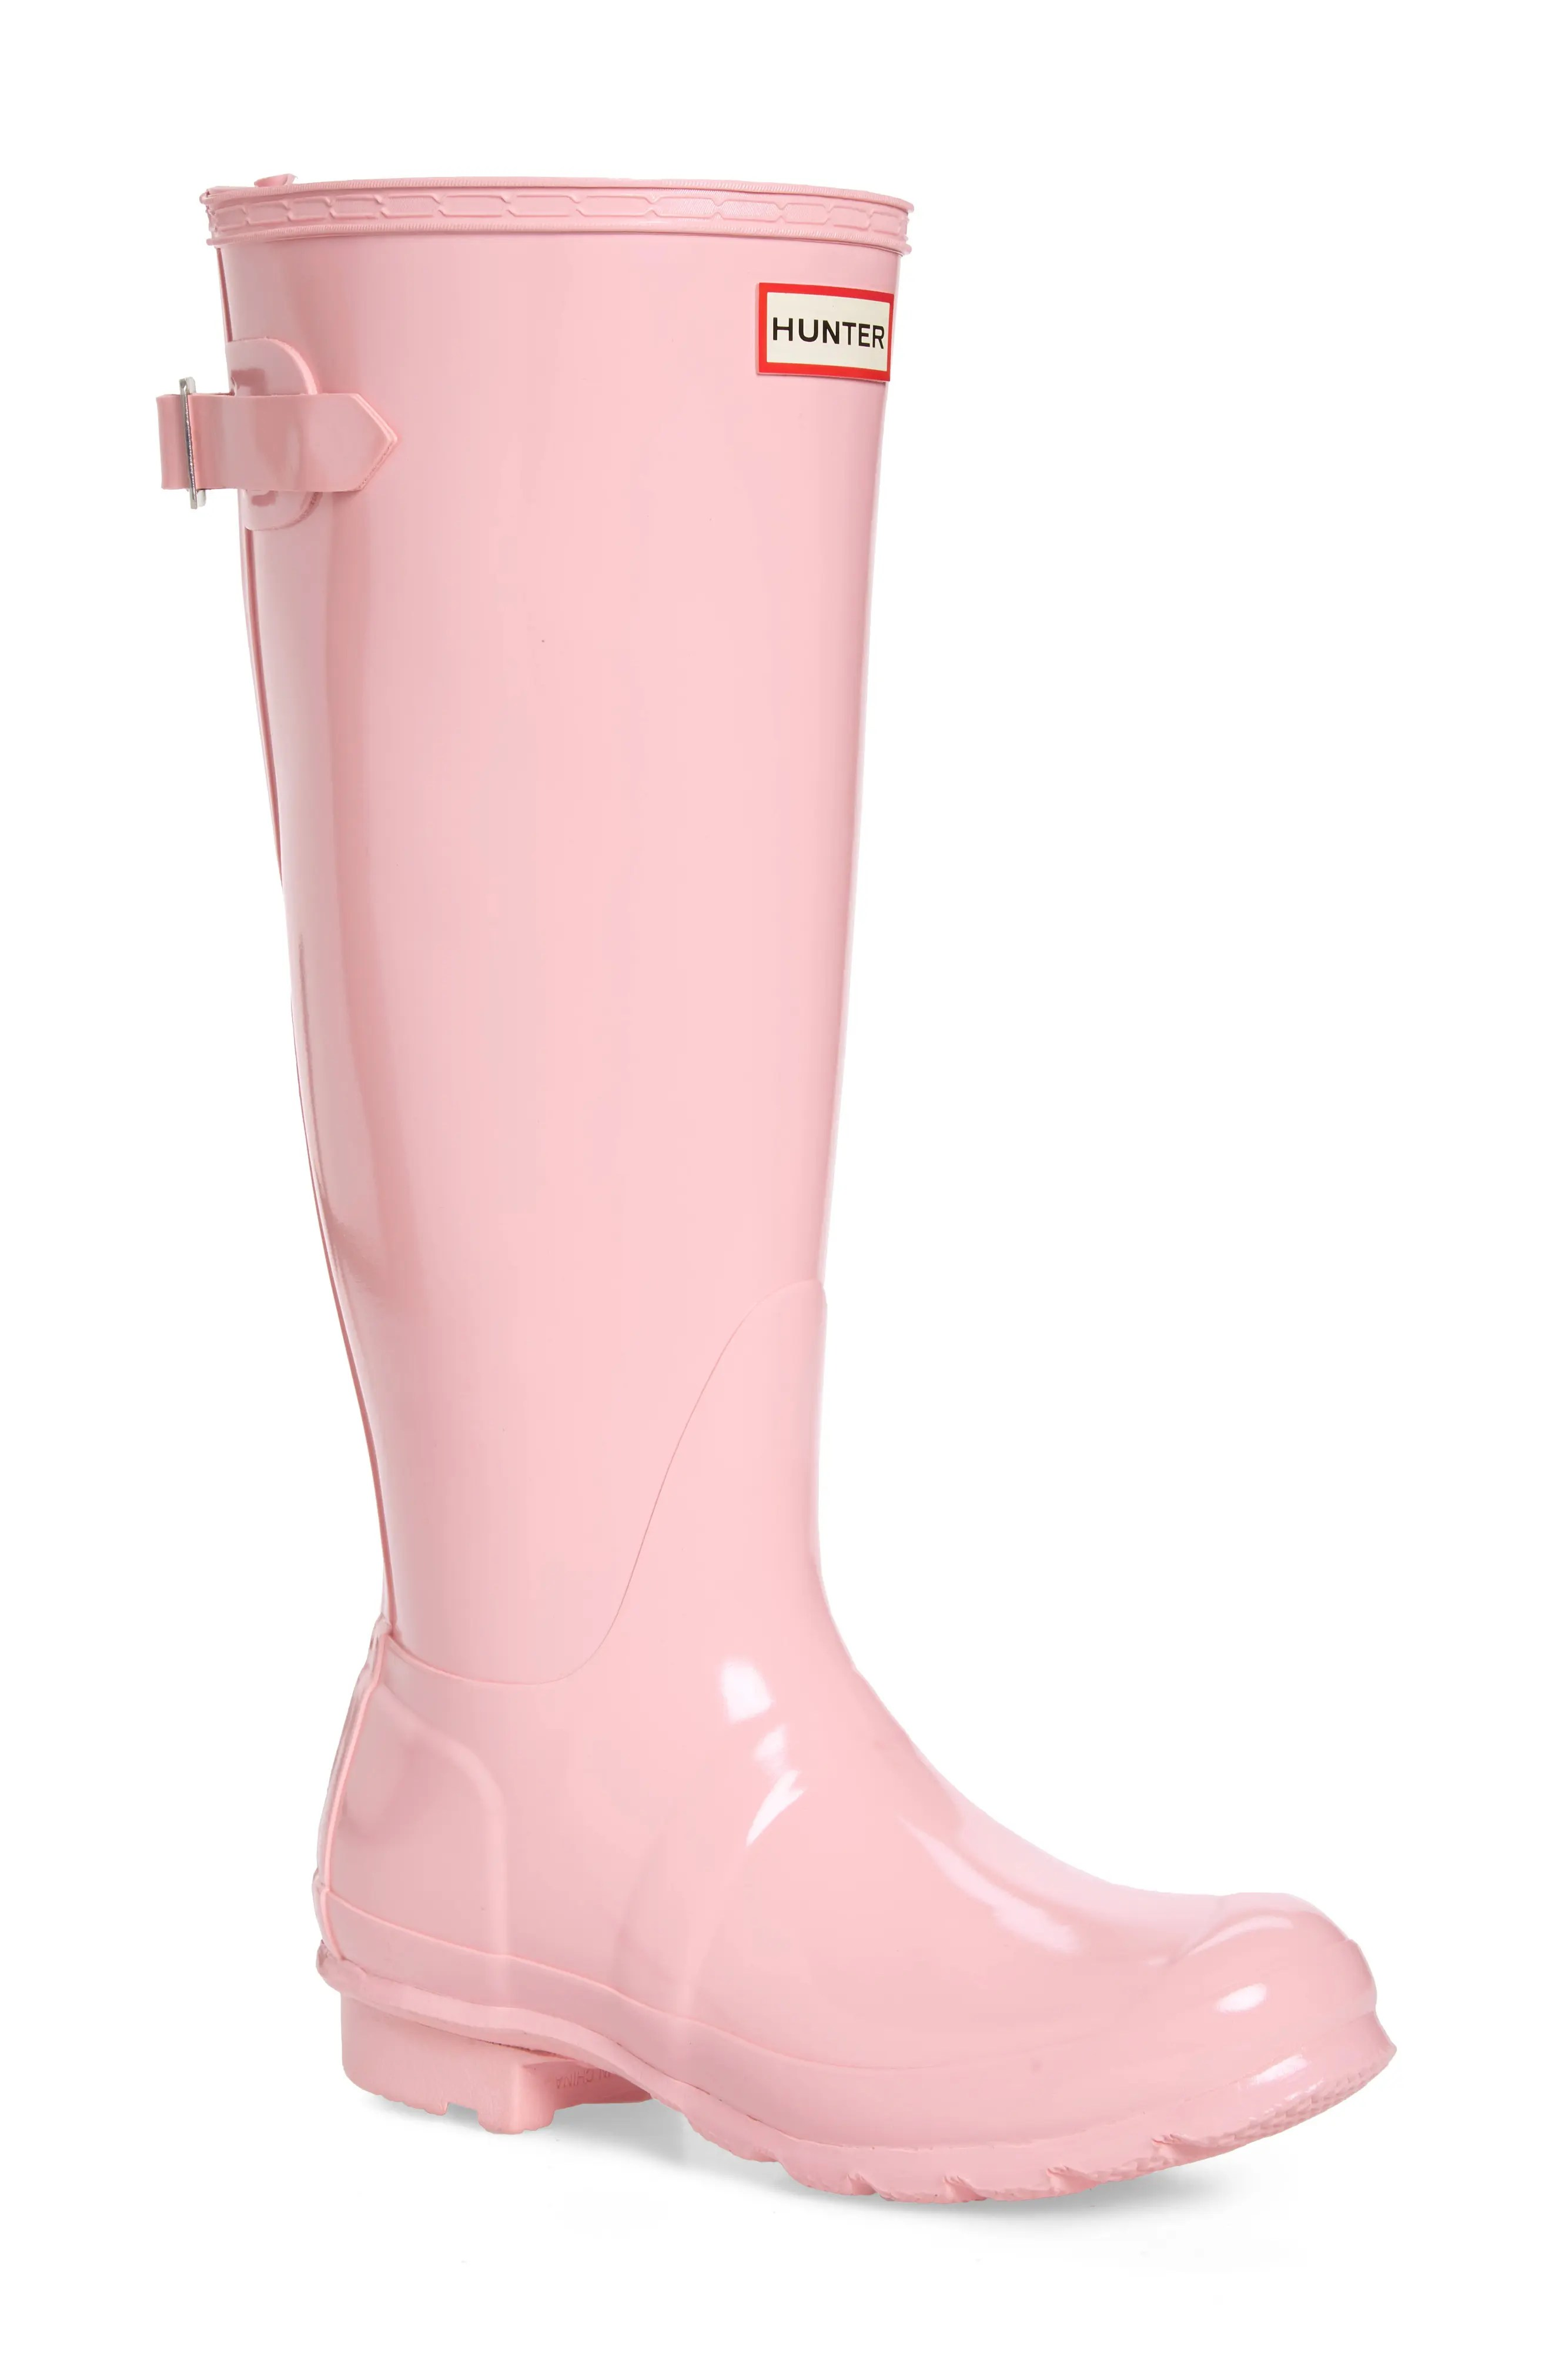 mia moda high chair pink lazy boy office women s boots nordstrom product image